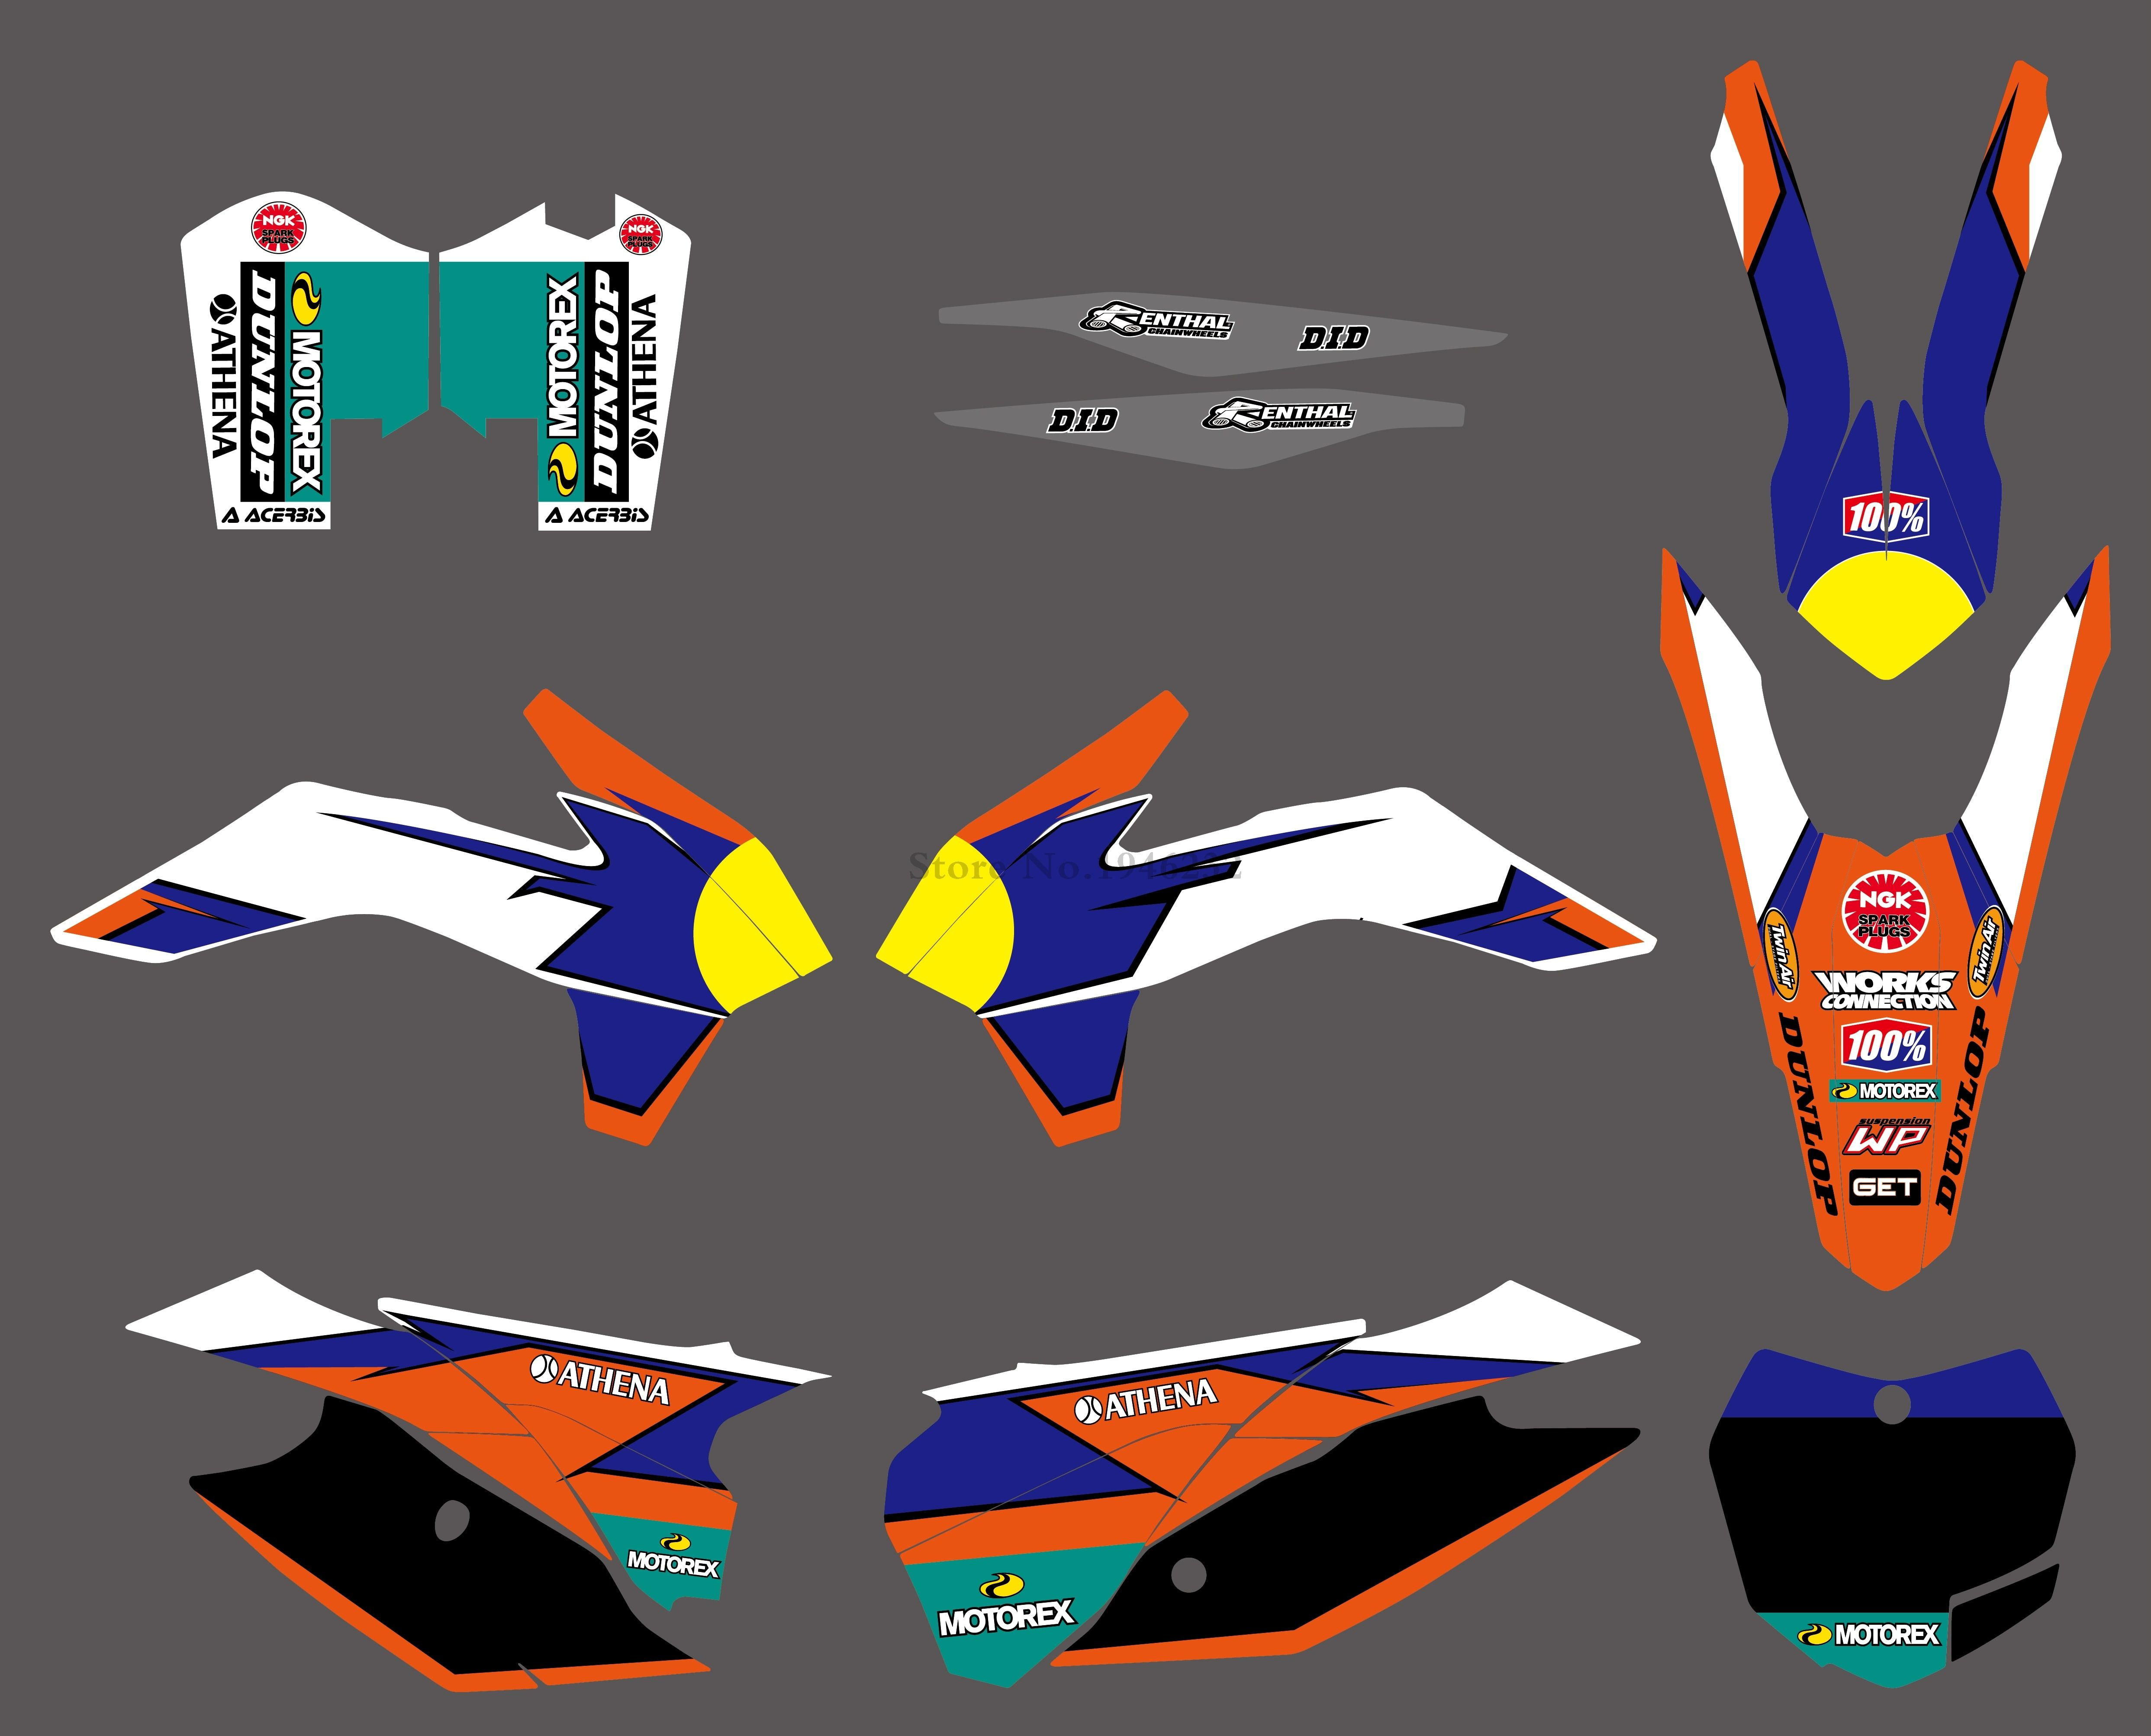 H2CNC NEW STYLE TEAM GRAPHICS DECALS STICKERS FOR KTM SX SXF XC XCF 125 200 250 300 350 450 2013 2014 2015